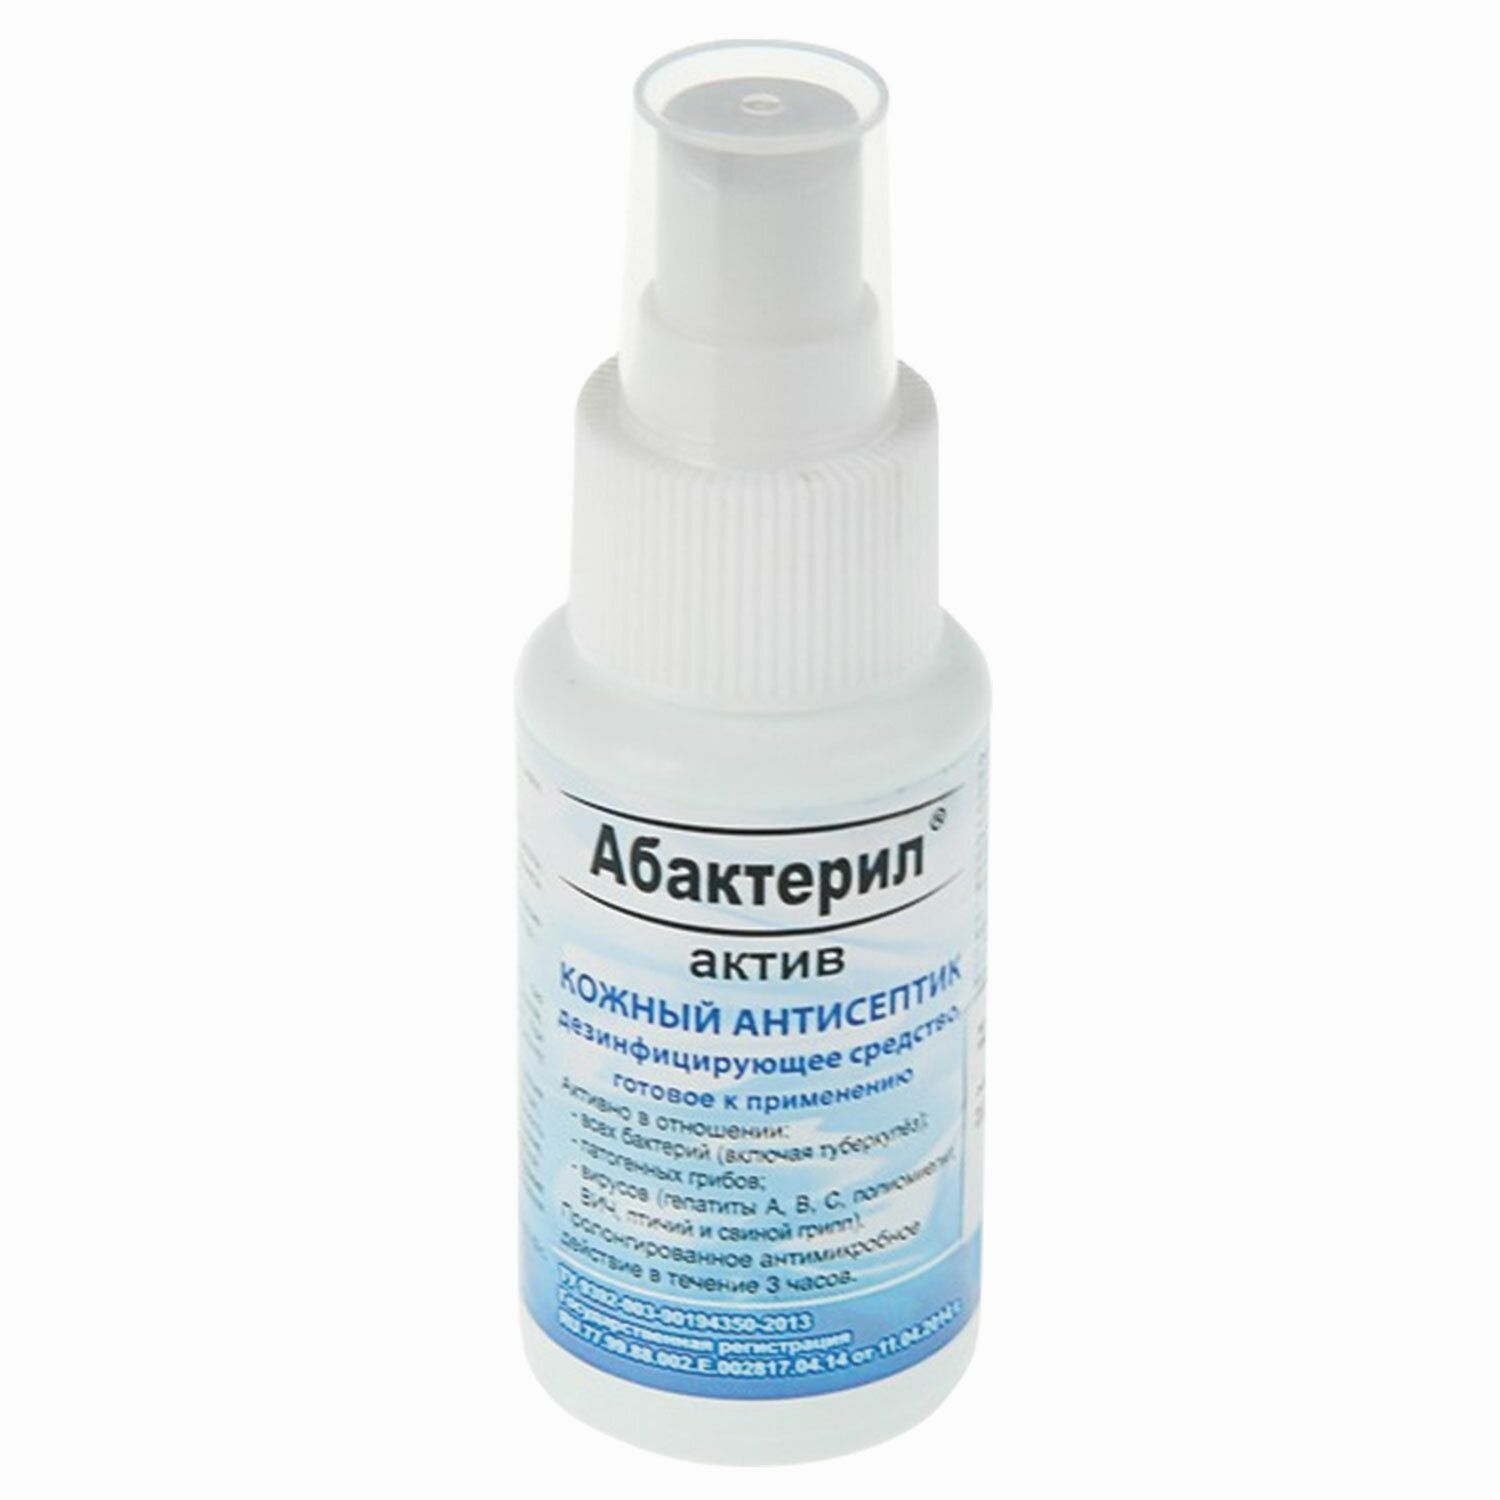 ABACTERIL / Alcohol-containing skin disinfectant antiseptic (64%) ACTIVE, ready-made solution, spray, 50 ml